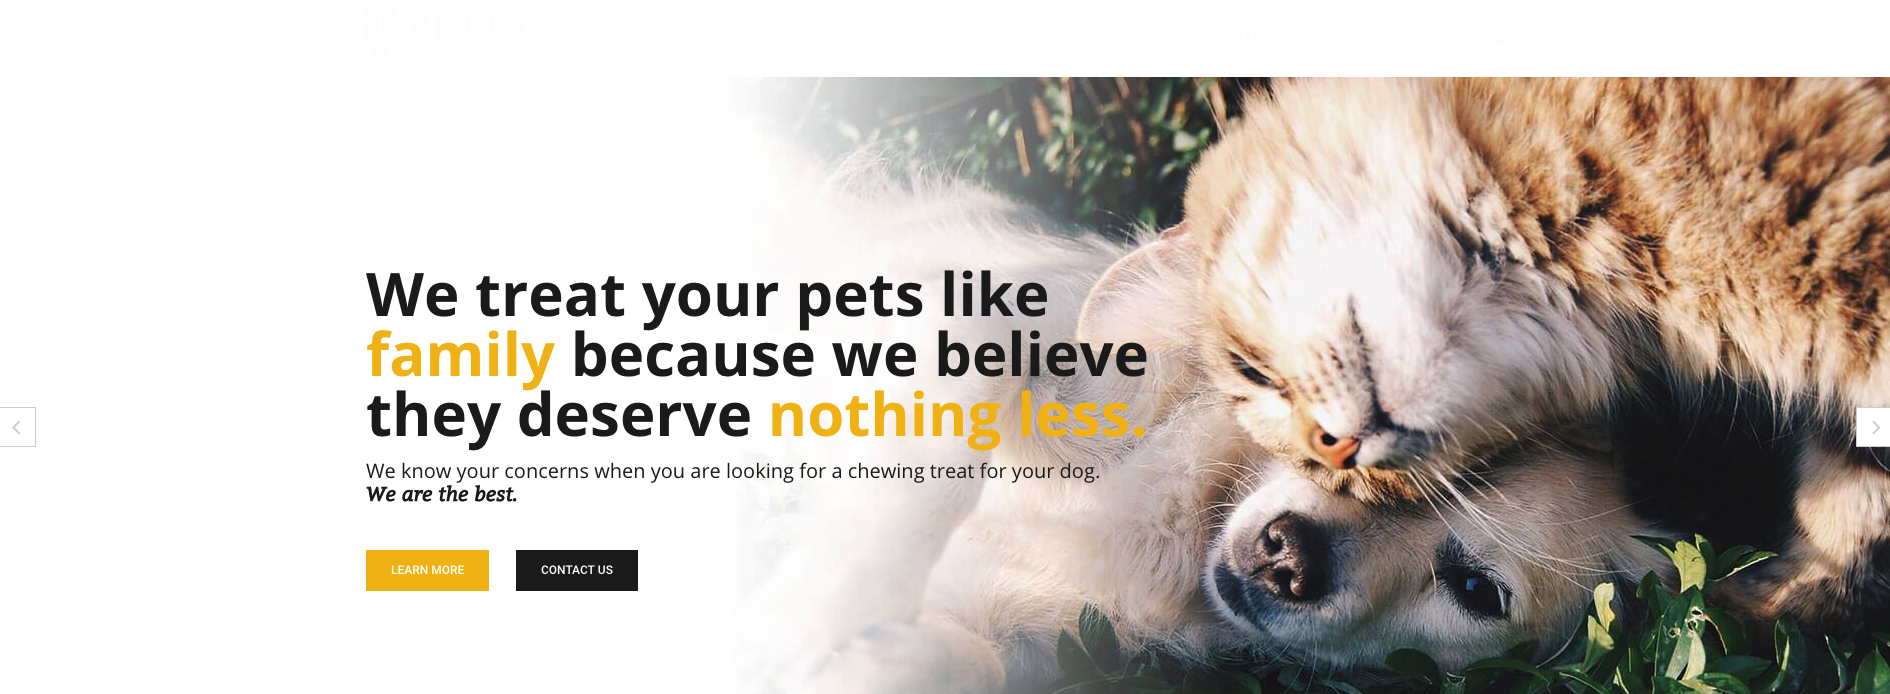 Petta – Pet Care WordPress Theme Overview